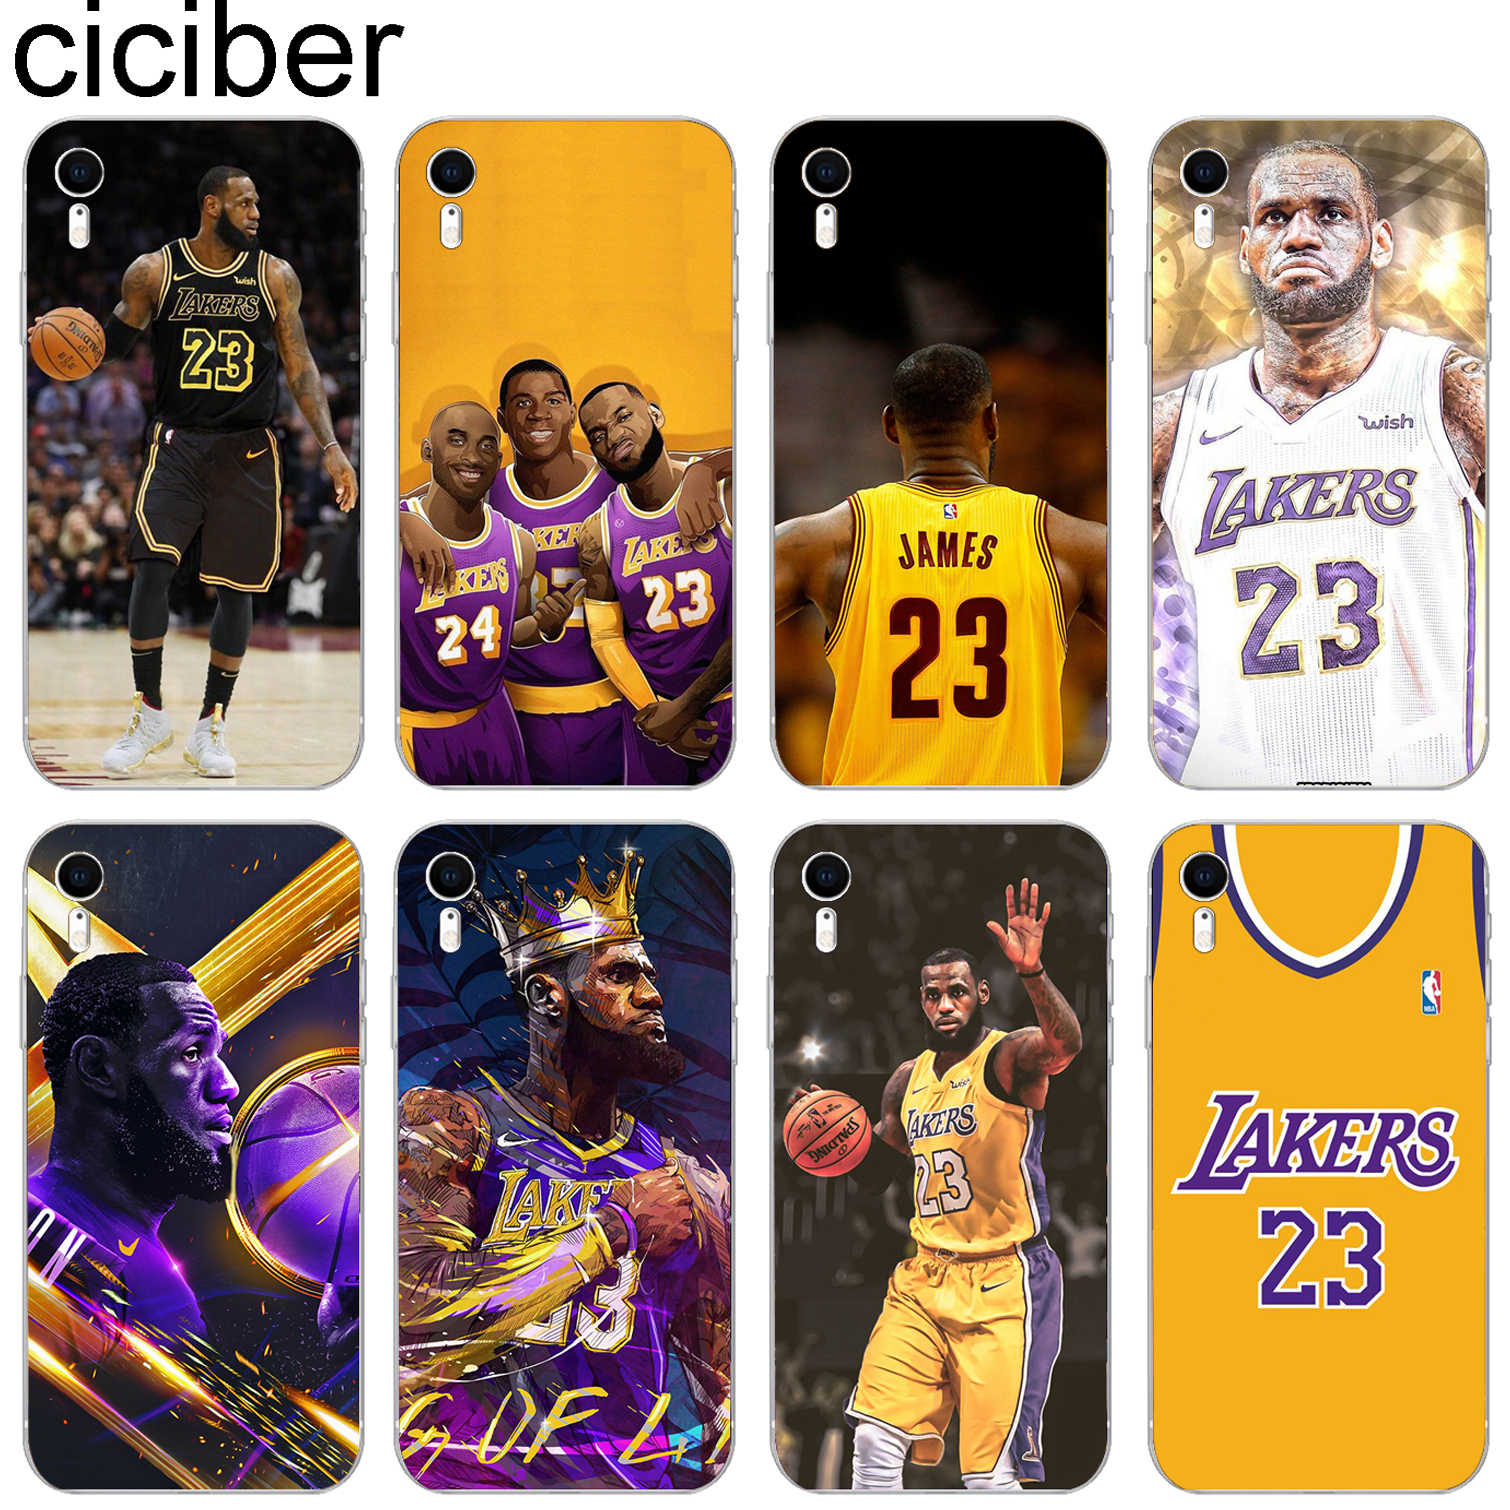 8e24f42f51242d Ciciber Sports Basketball Pattern Design Soft Silicone Phone Cases Cover  for Iphone 8 7 6 6S